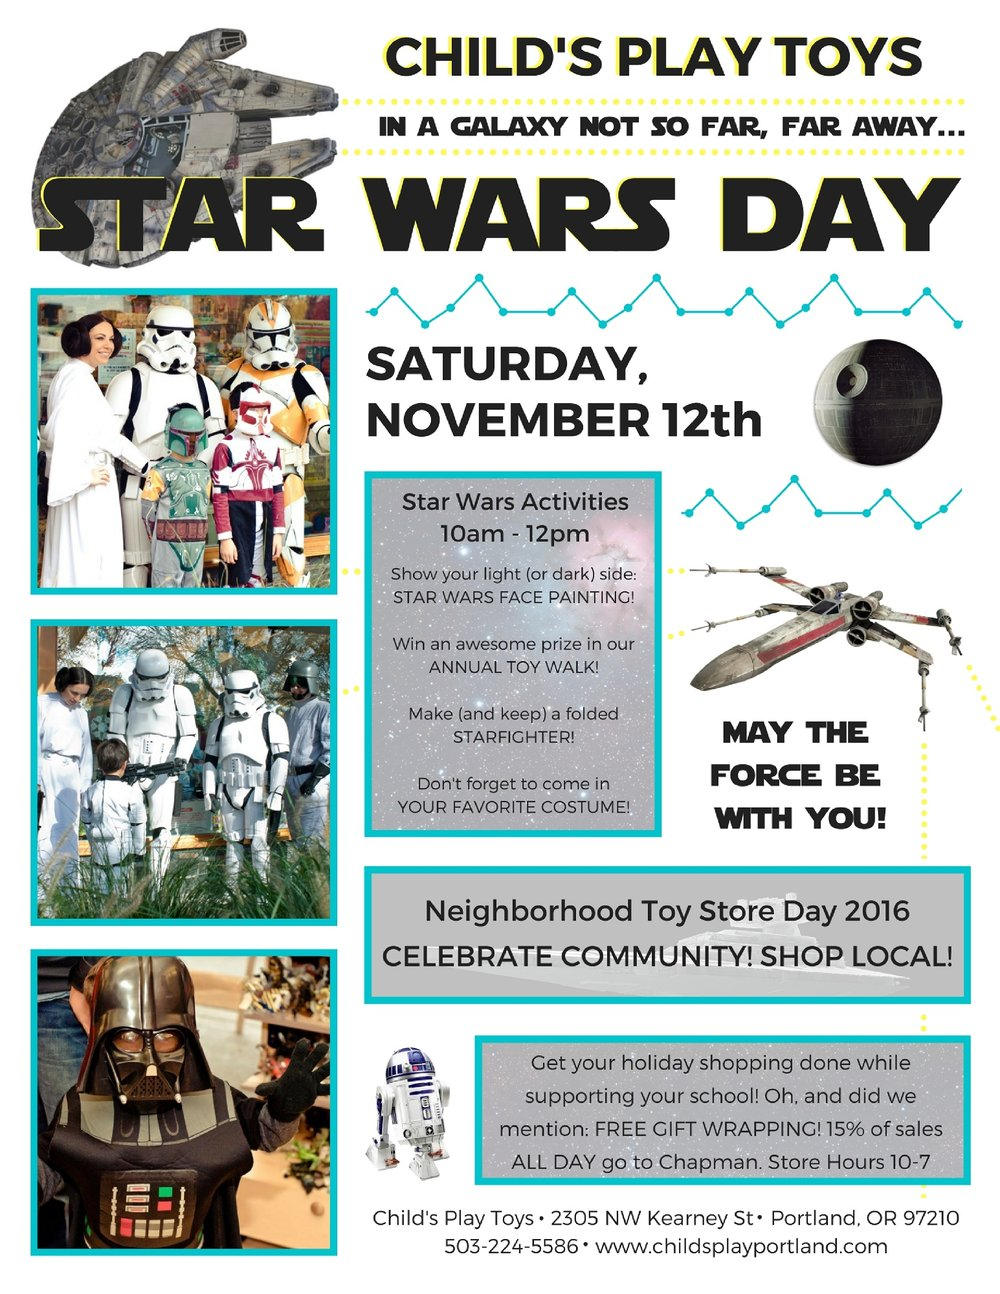 star_wars_day_event_portland_toy_store